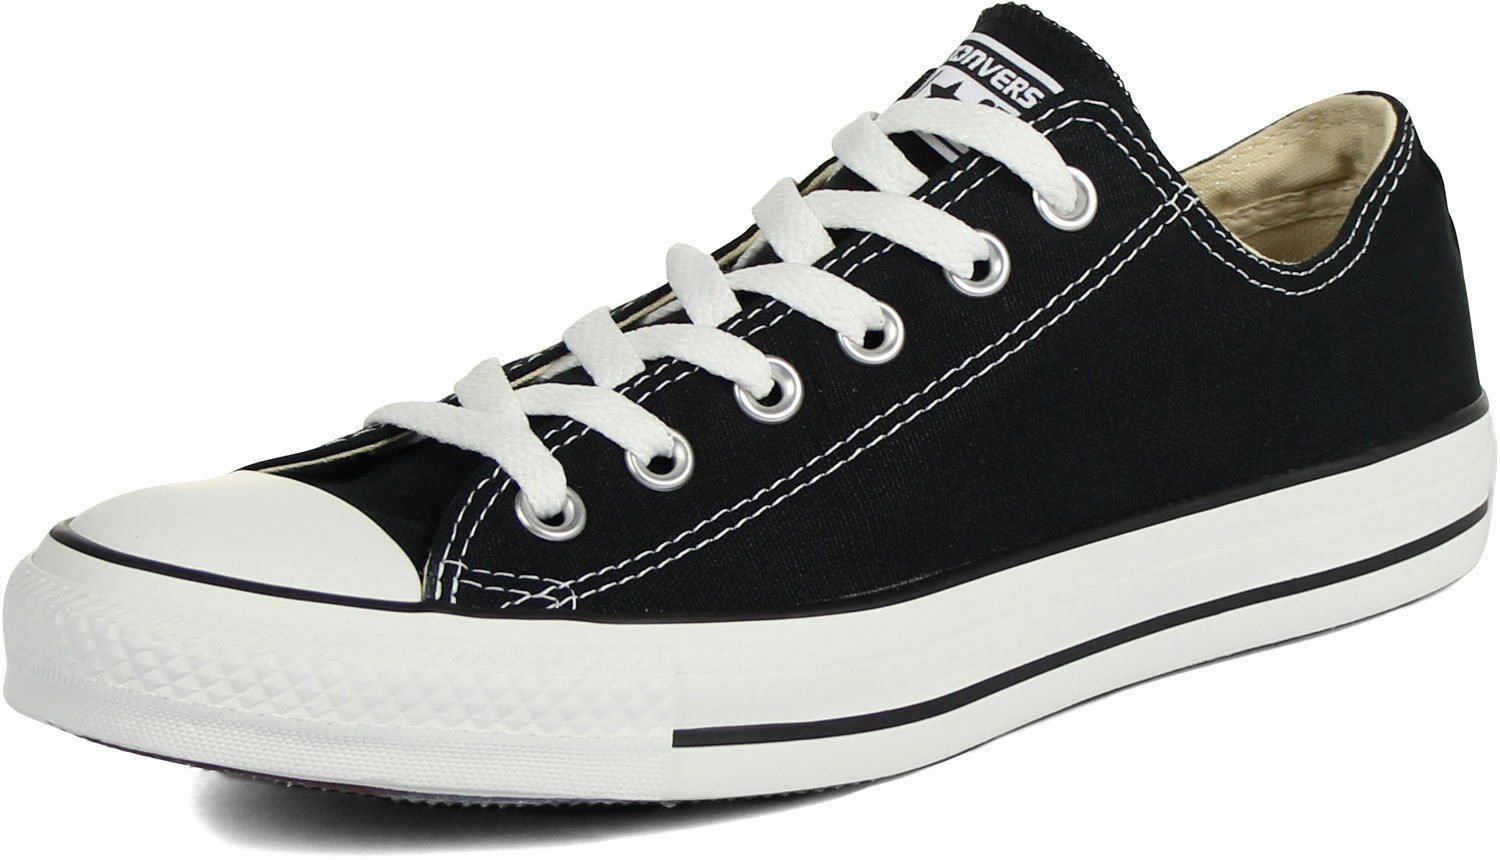 CONVERSE CHUCK TAYLOR ALL STAR LO TOP M9166 Black SHOES  - W 13   M 11